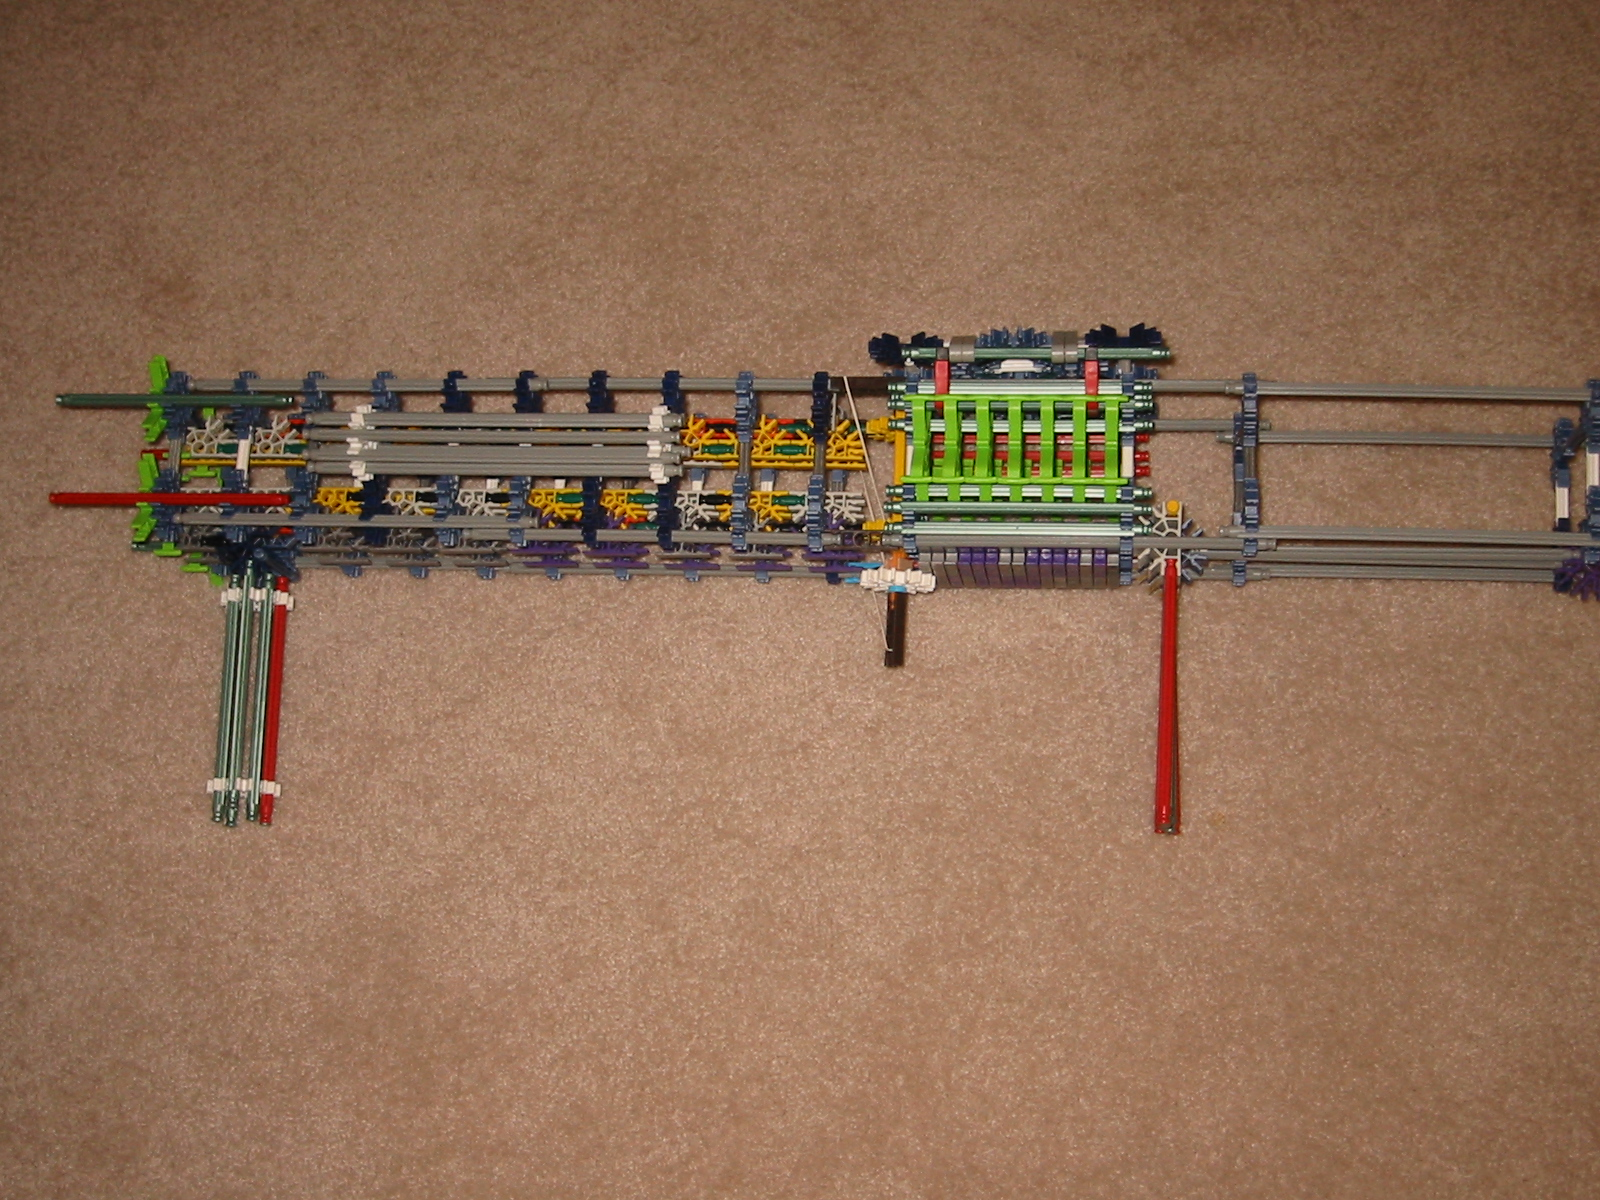 Picture of knex ML9 missle launcher from halo series